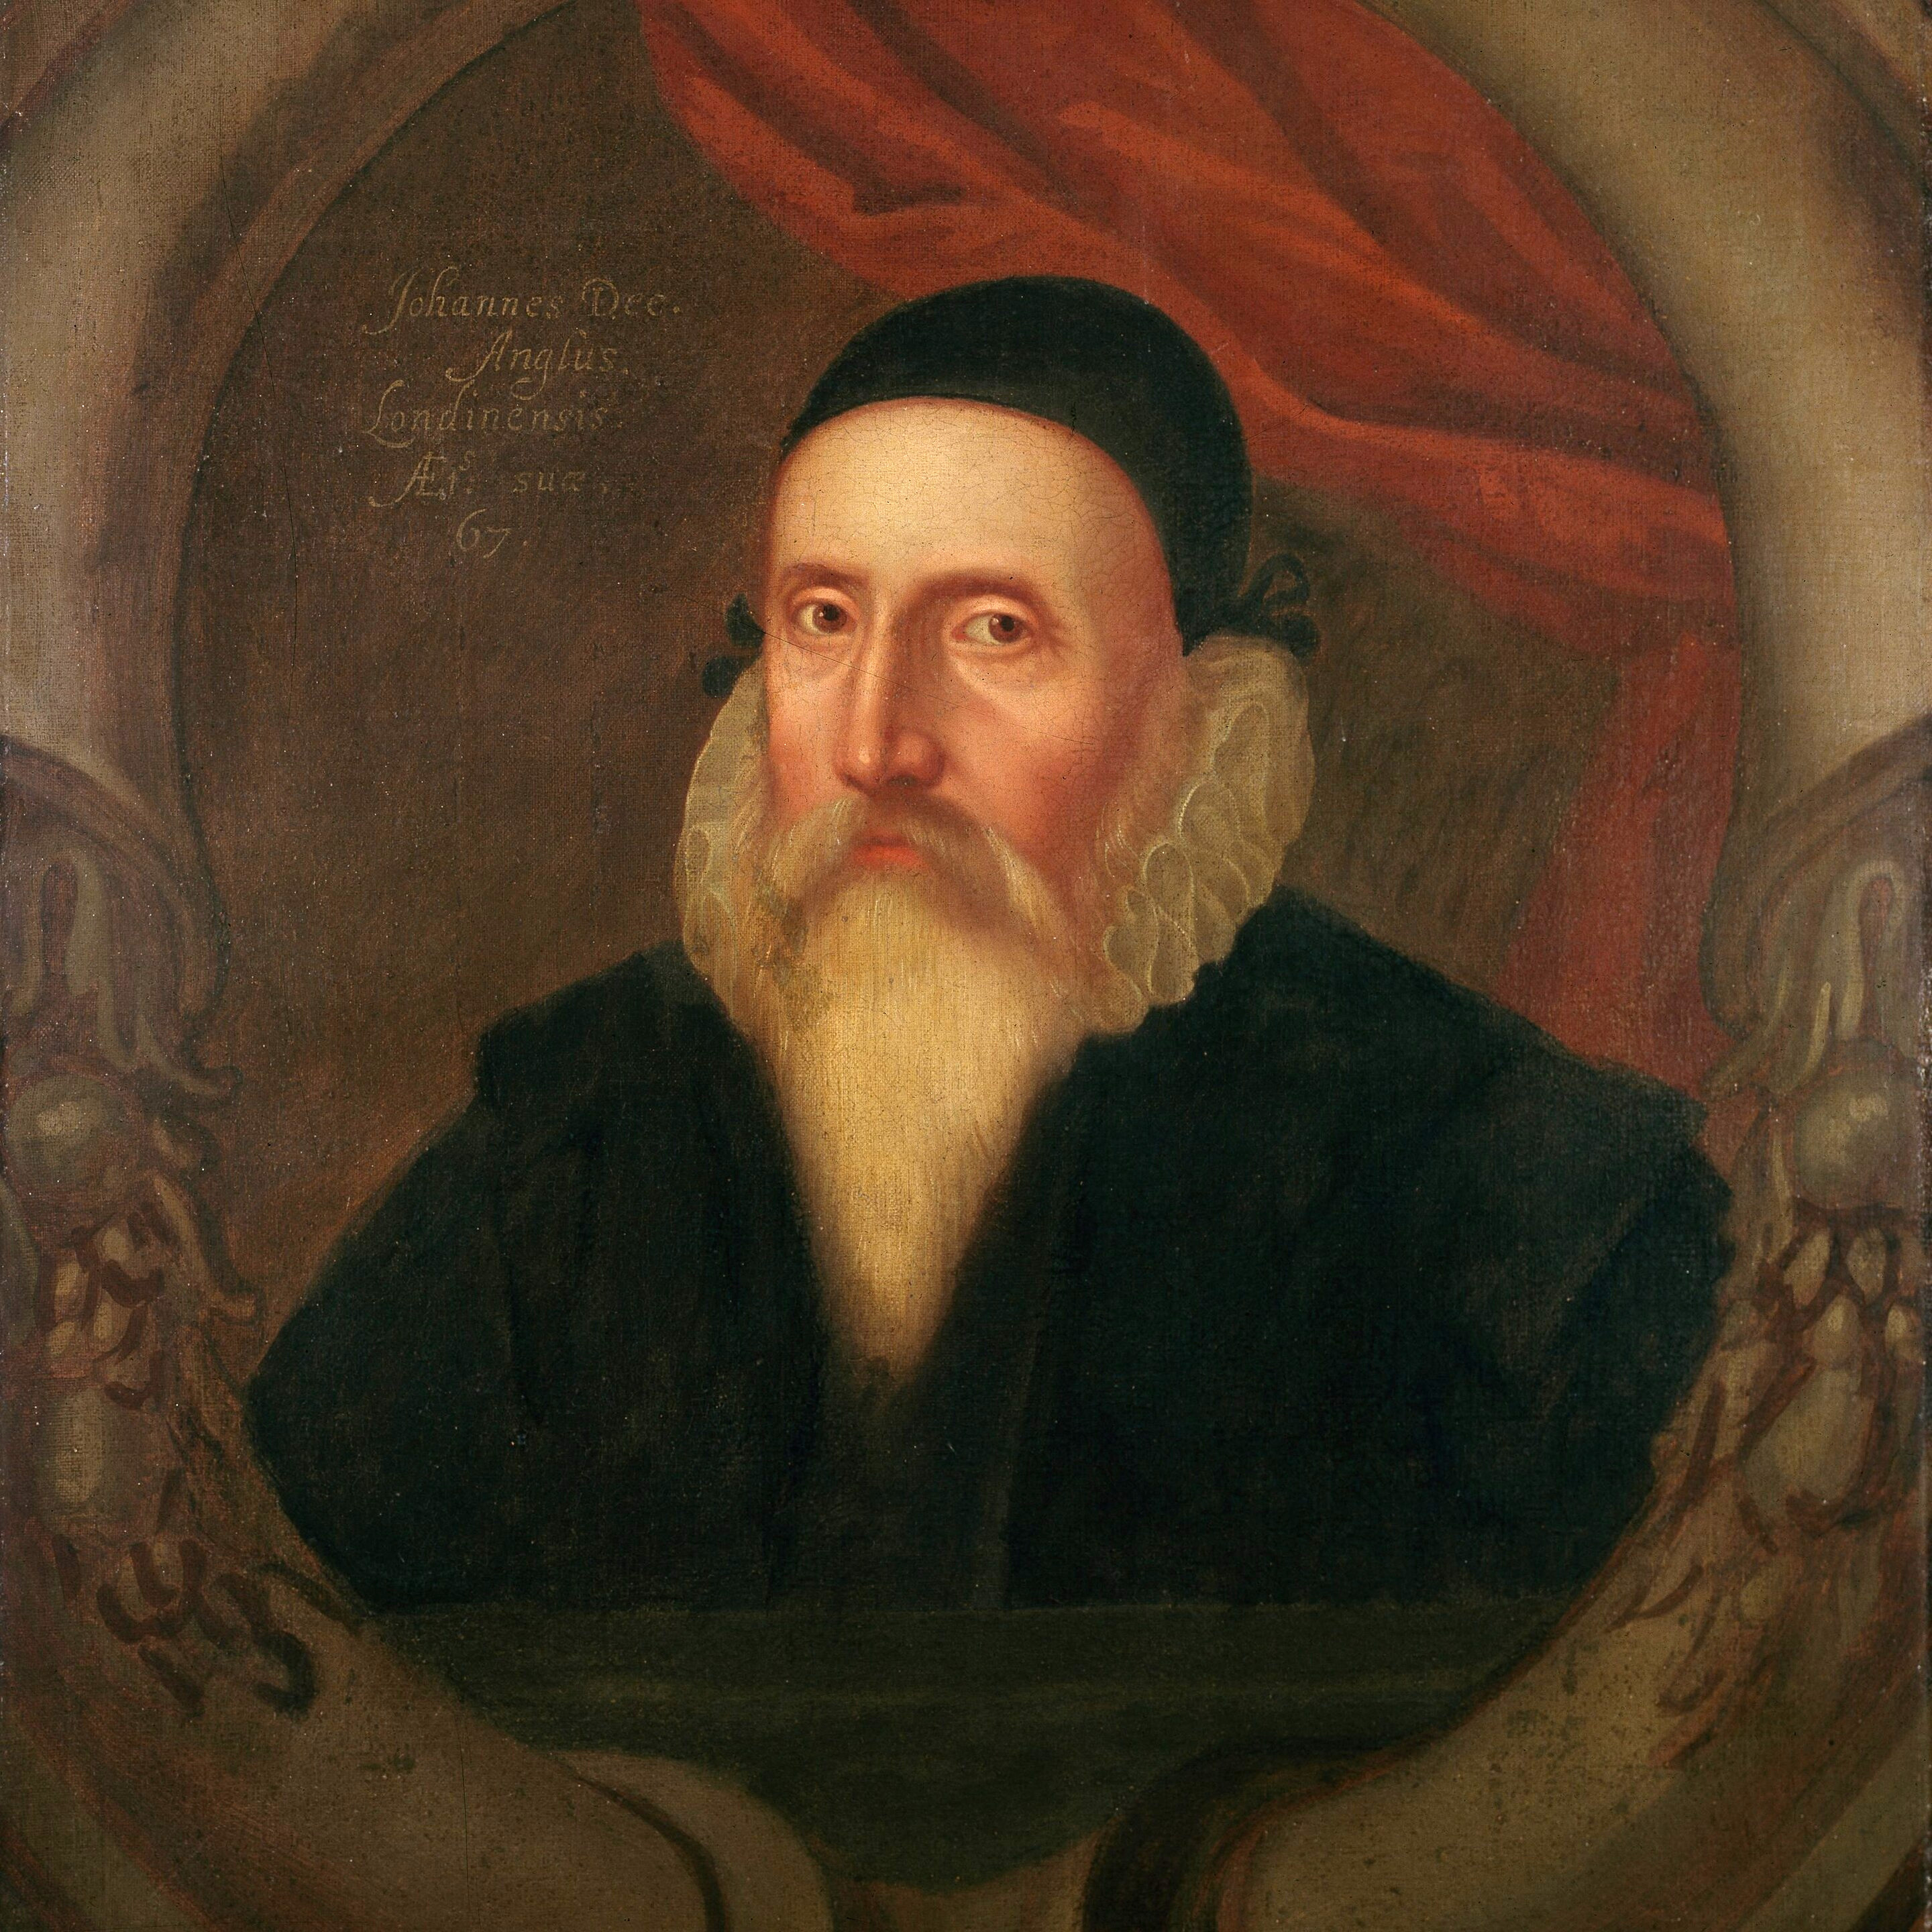 A 16th-century portrait by<br />an unknown artist.<ref>According to Charlotte Fell-Smith, this portrait was painted when Dee was 67. It belonged to his grandson Rowland Dee and later to [[Elias Ashmole]], who left it to Oxford University.</ref>